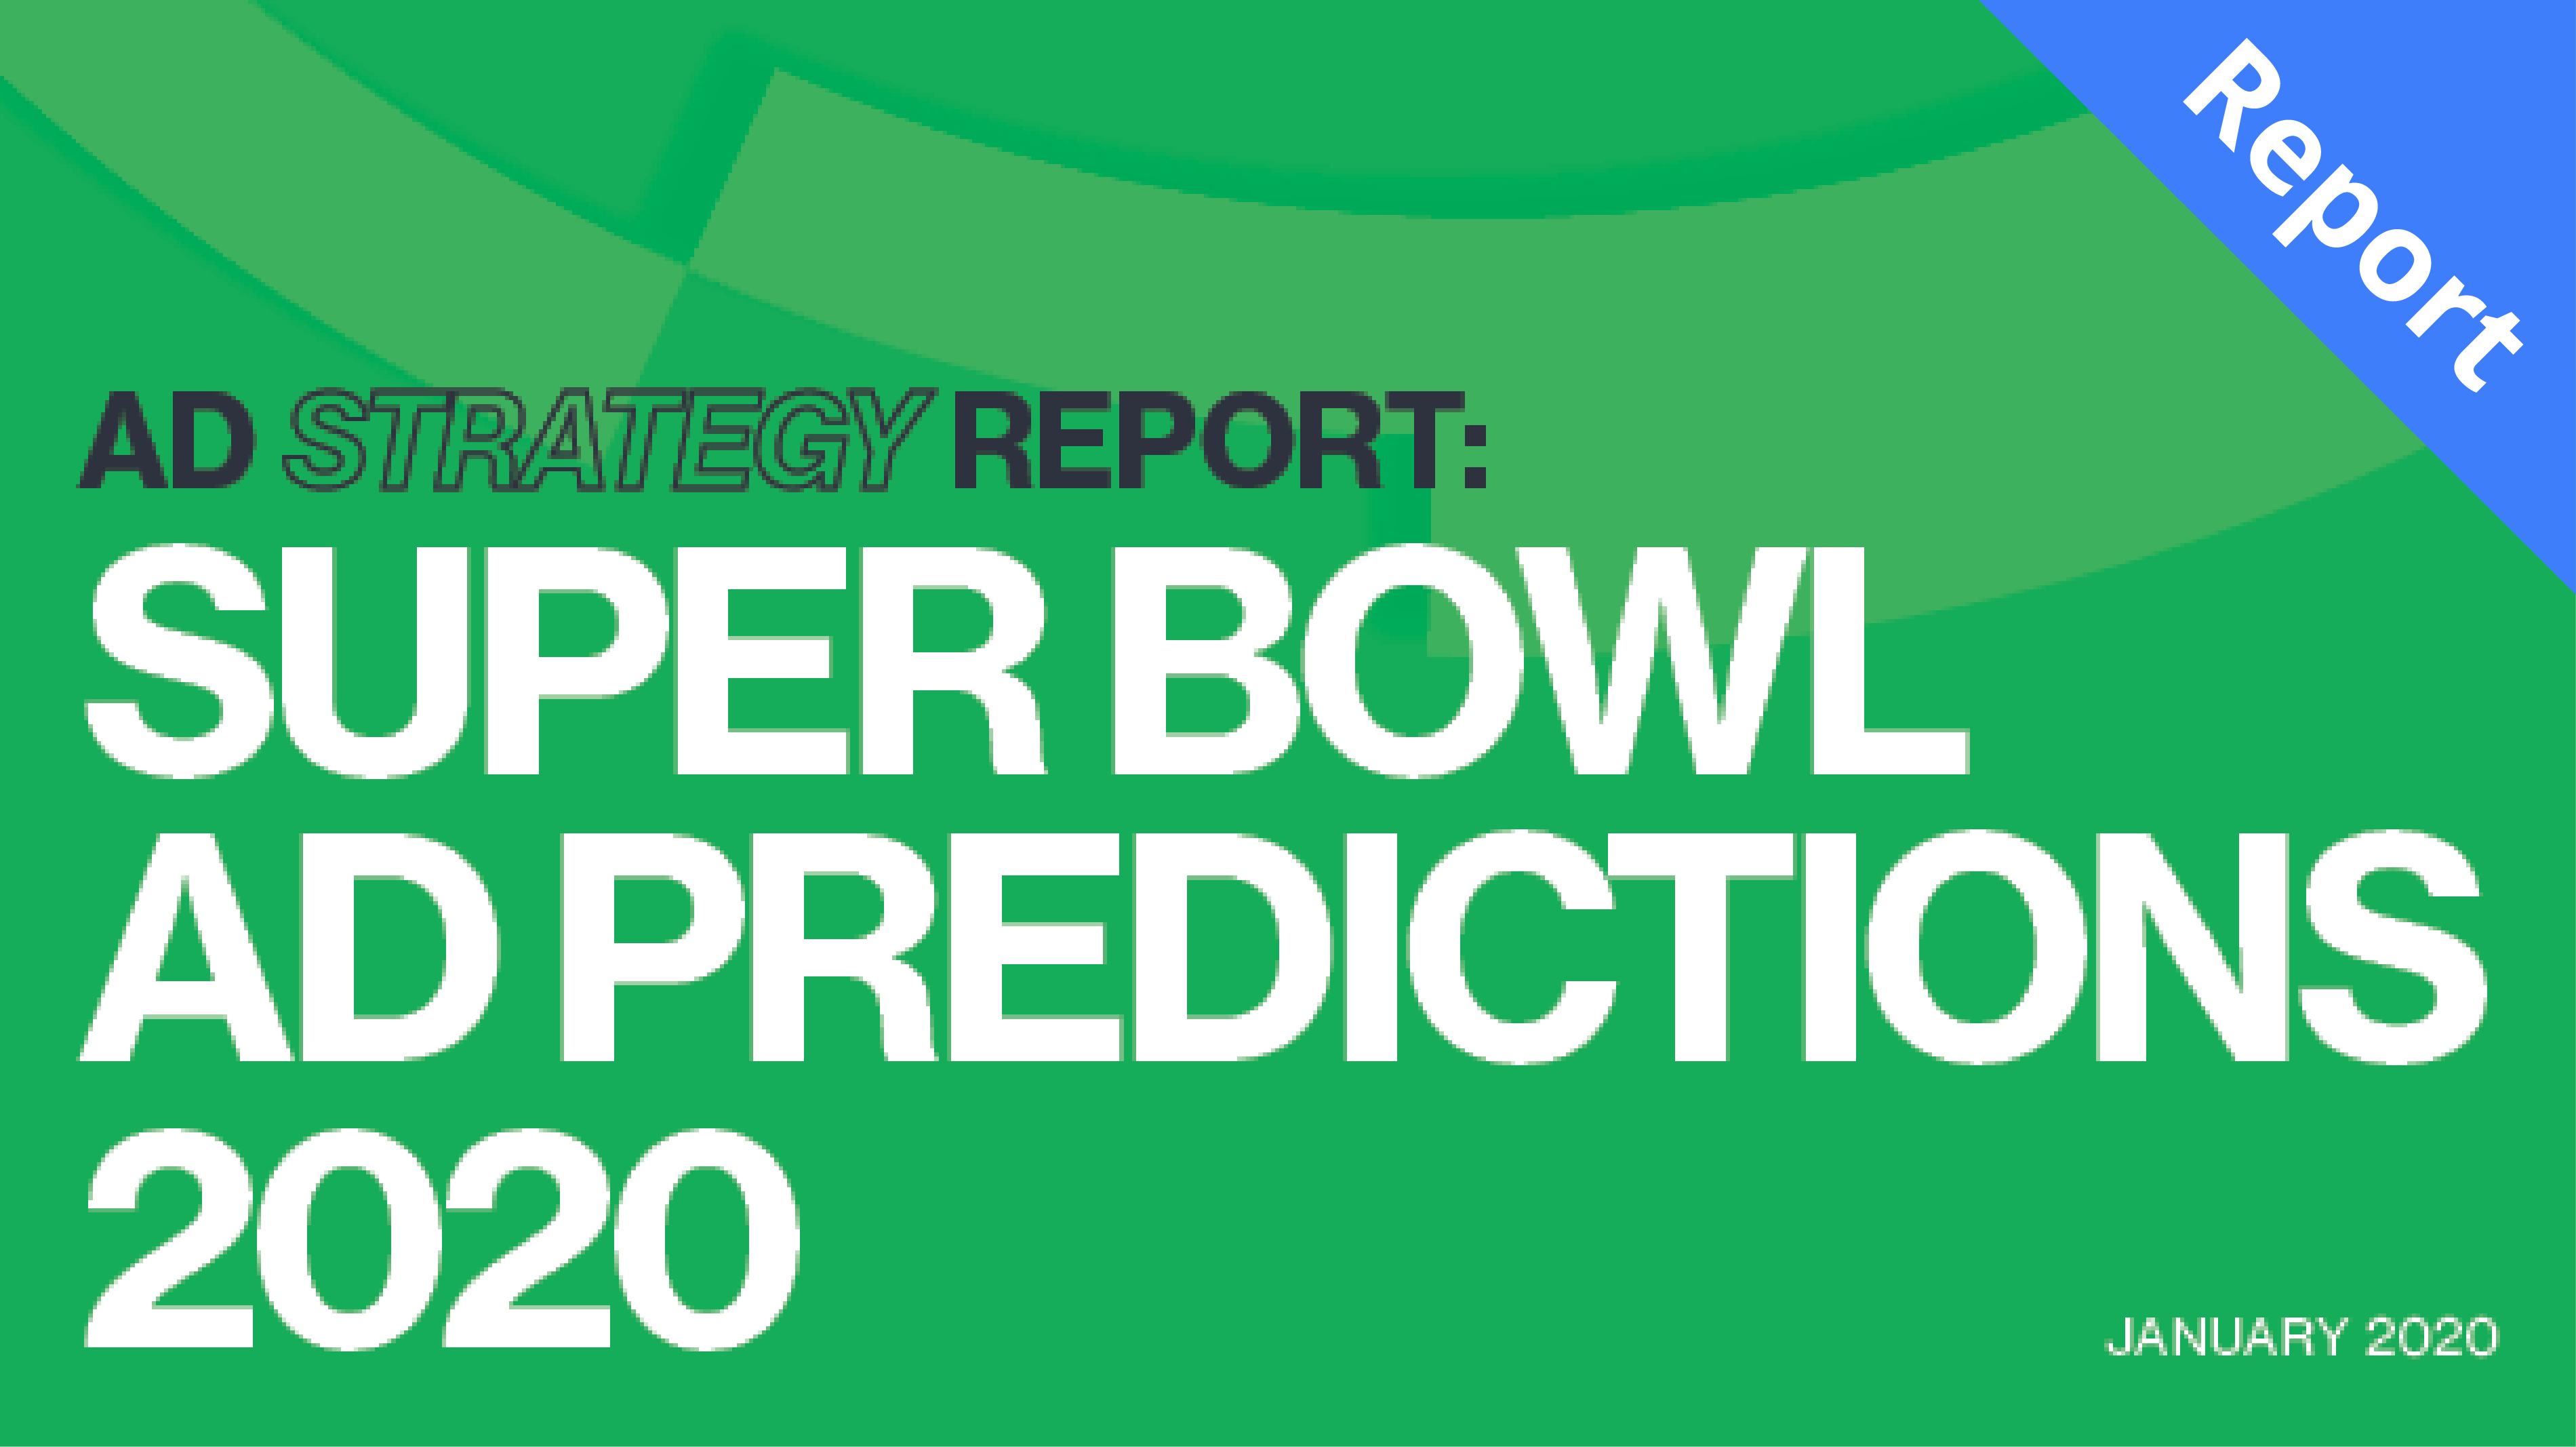 Ad Strategy Report: Super Bowl Ad Predictions 2020